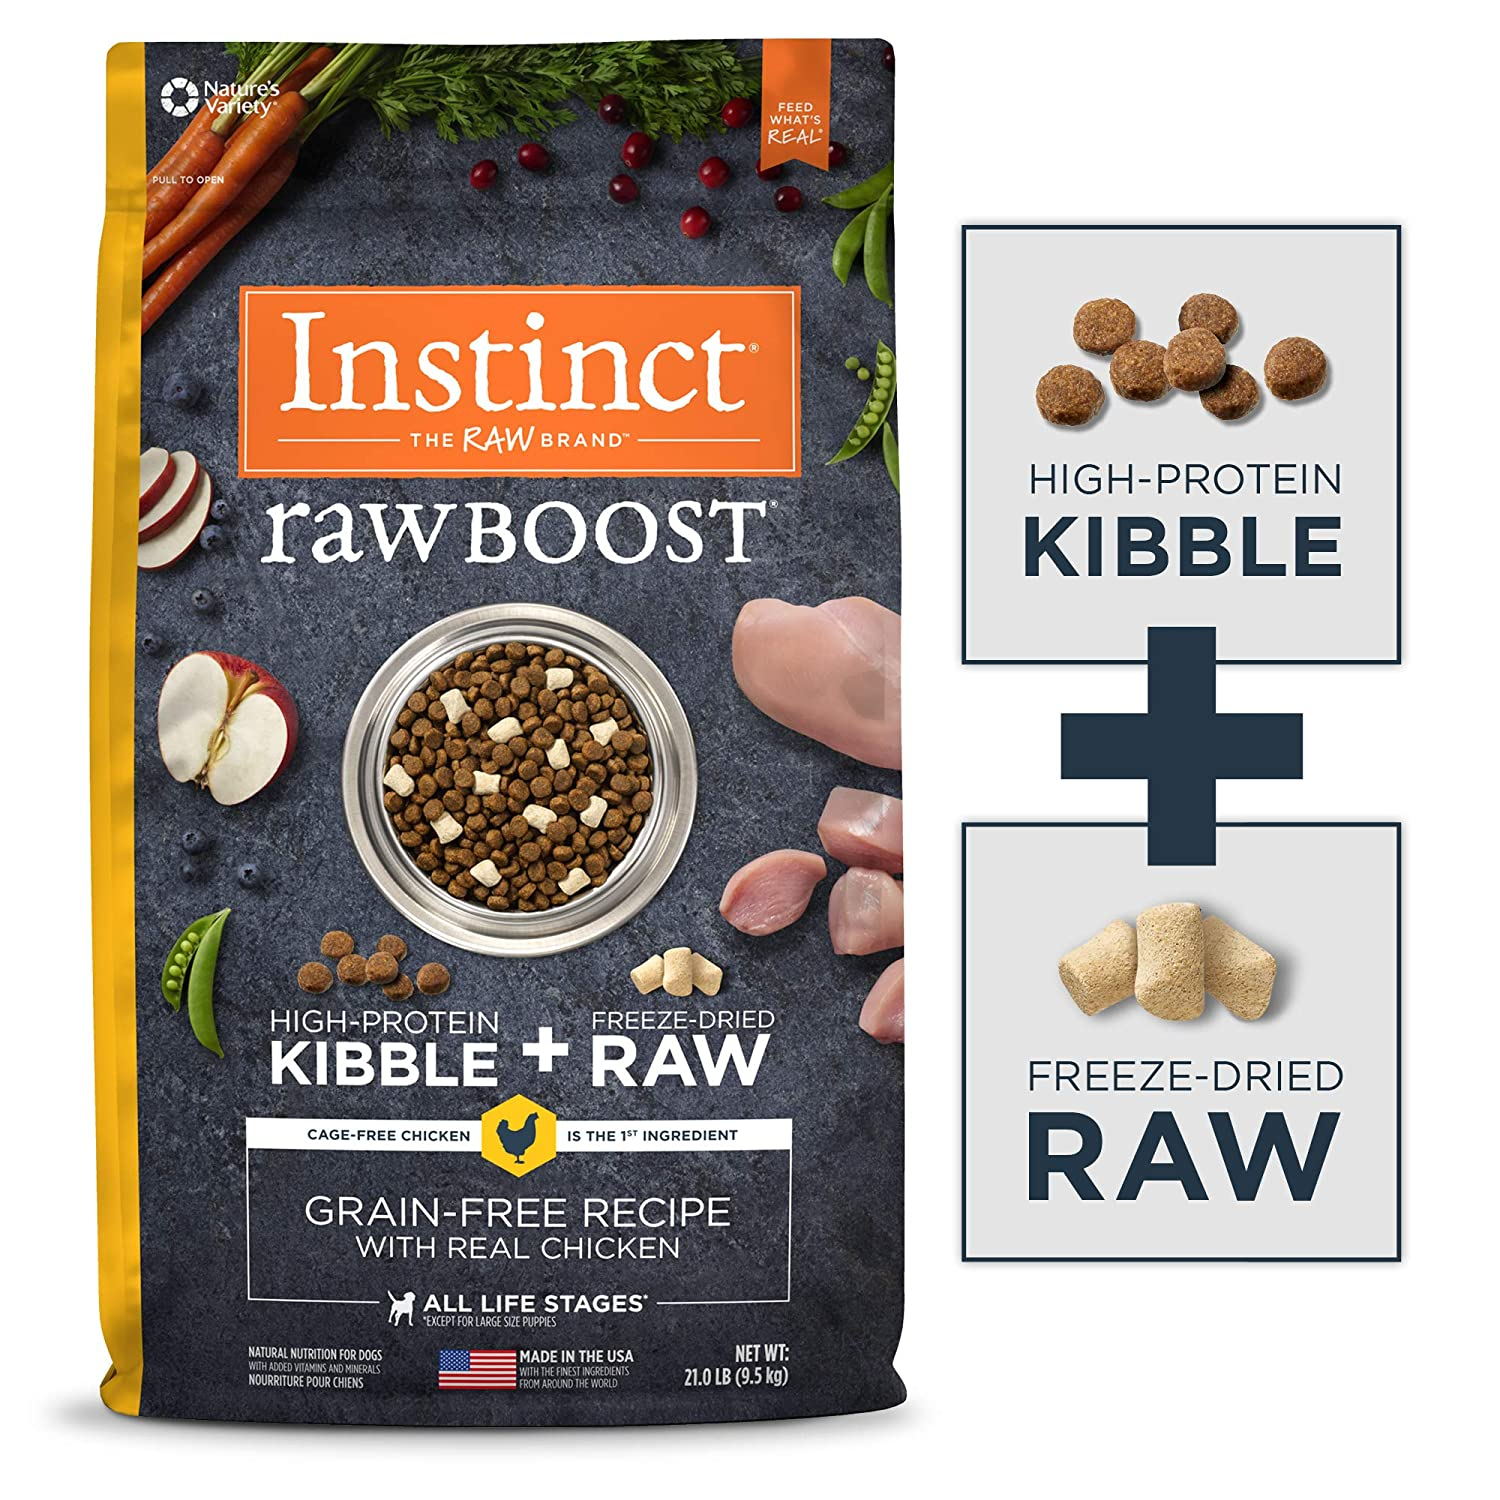 3.Instinct by Nature's Variety Raw Boost Grain-Free Dry Dog Food